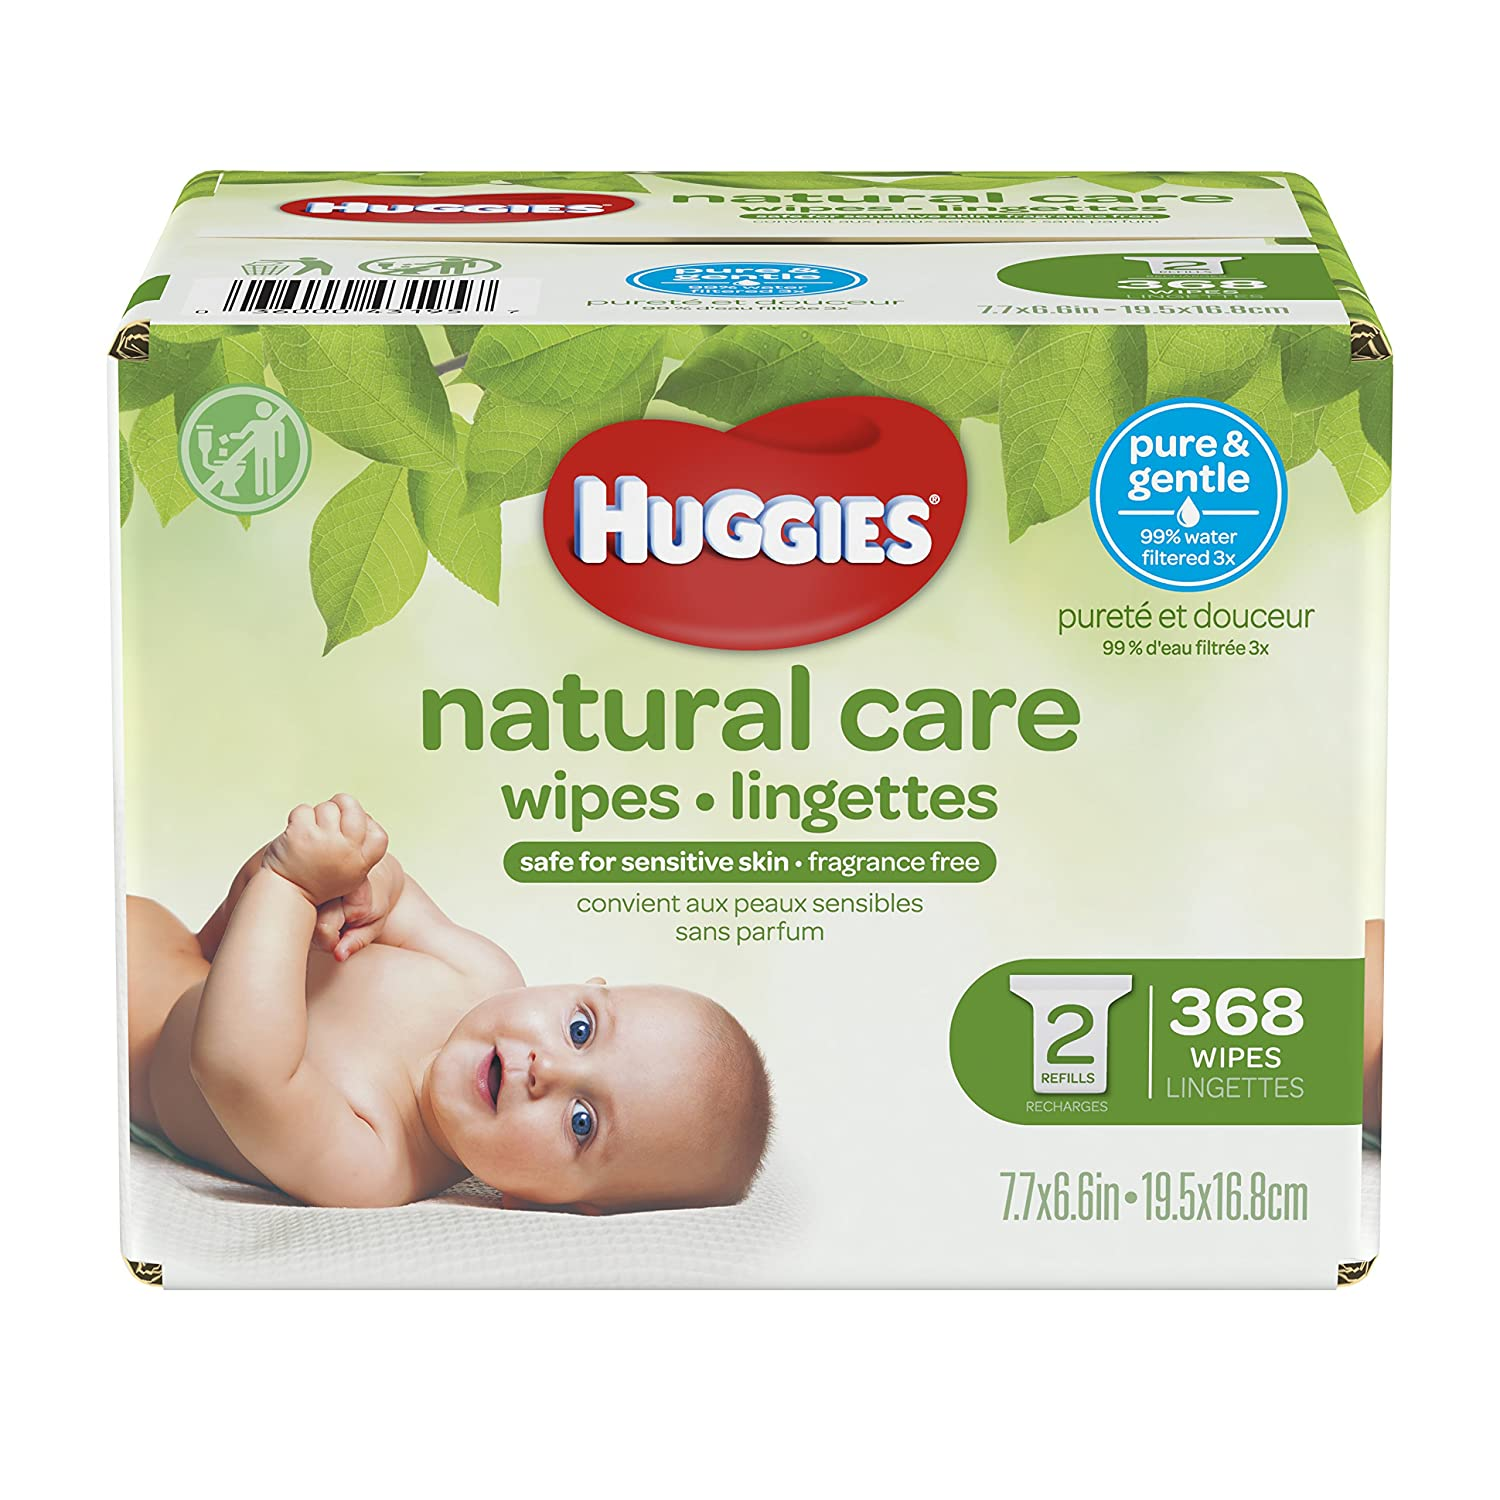 Huggies Natural Care Wipes, Fragrance Free, 368 Count by Amazon